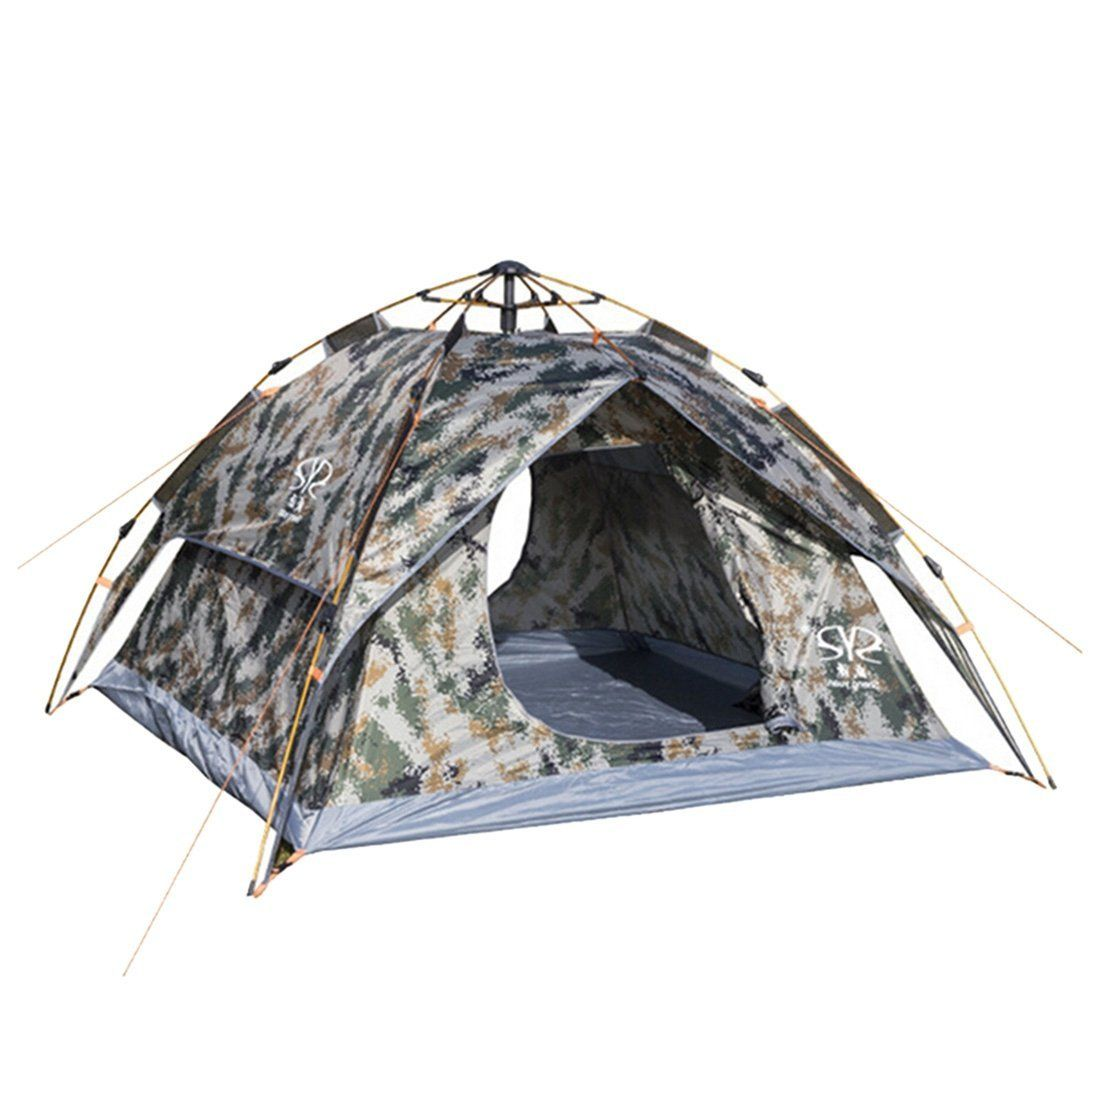 Jiyaru Automatic Easy-Up Tent Double Layer 3-4 Person Outdoor Instant Tent Camo  sc 1 st  Pinterest & Jiyaru Automatic Easy-Up Tent Double Layer 3-4 Person Outdoor ...